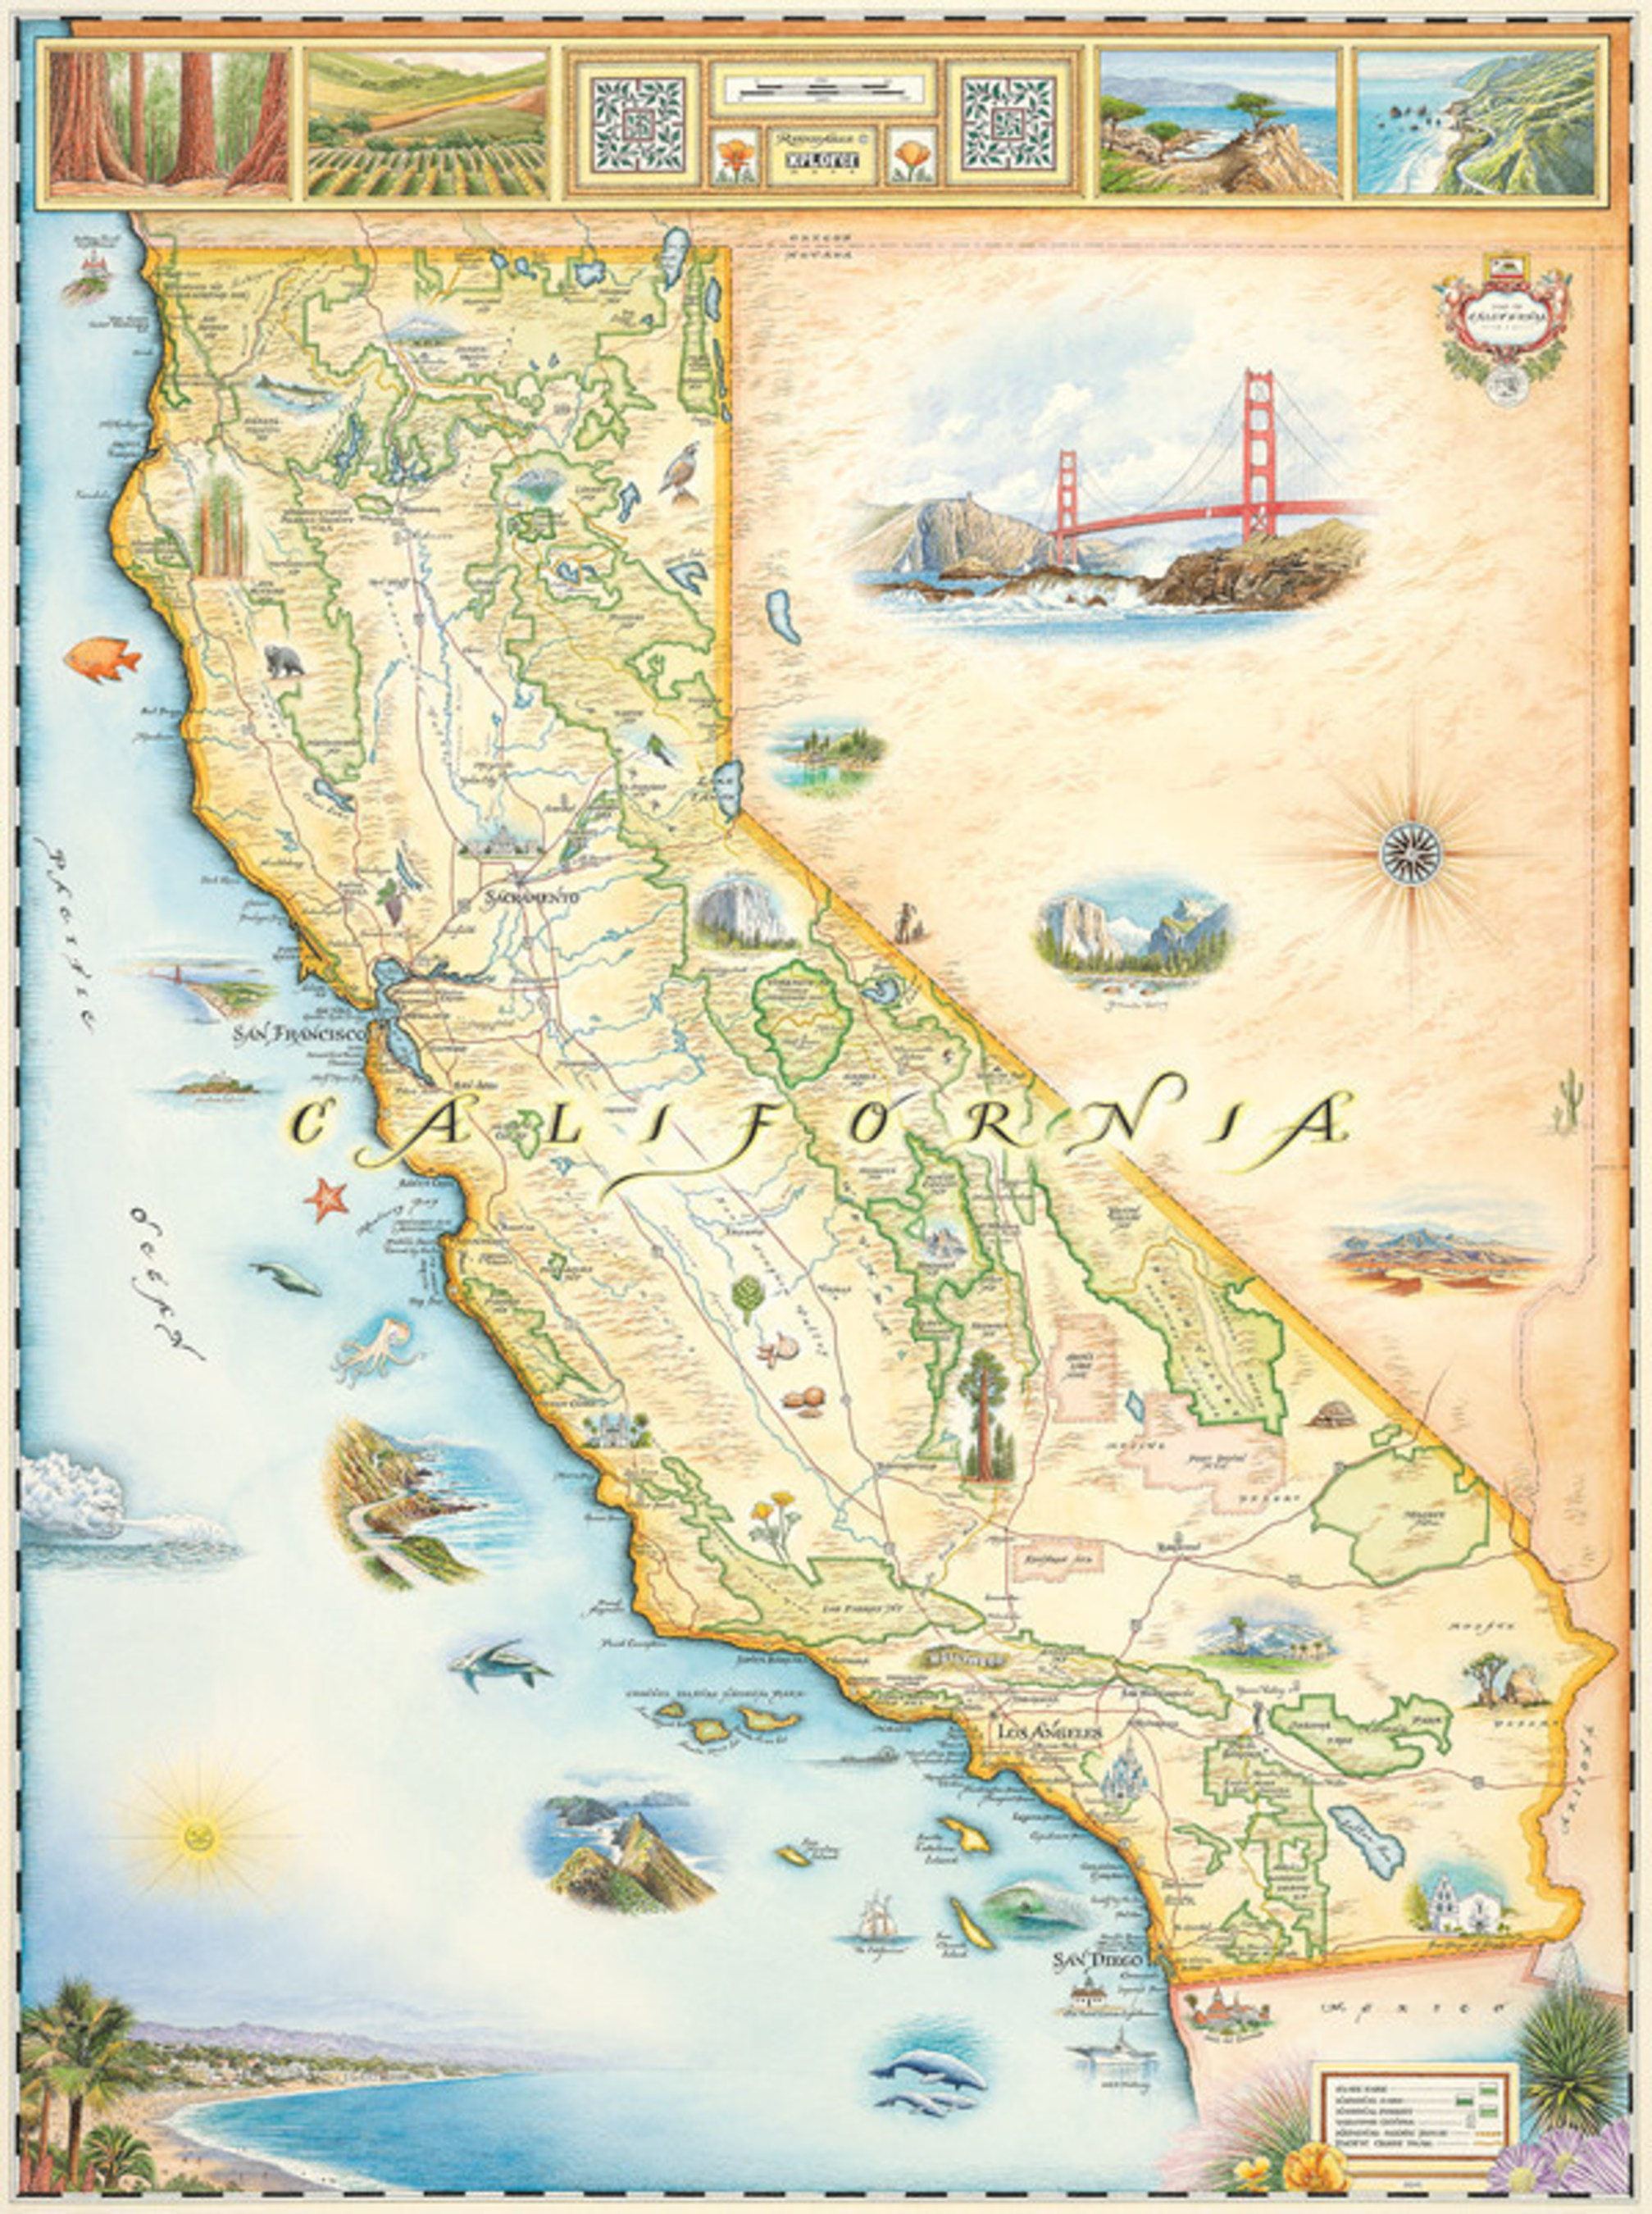 Xplorer Maps Announces the Release of 'CALIFORNIA: The Golden State'